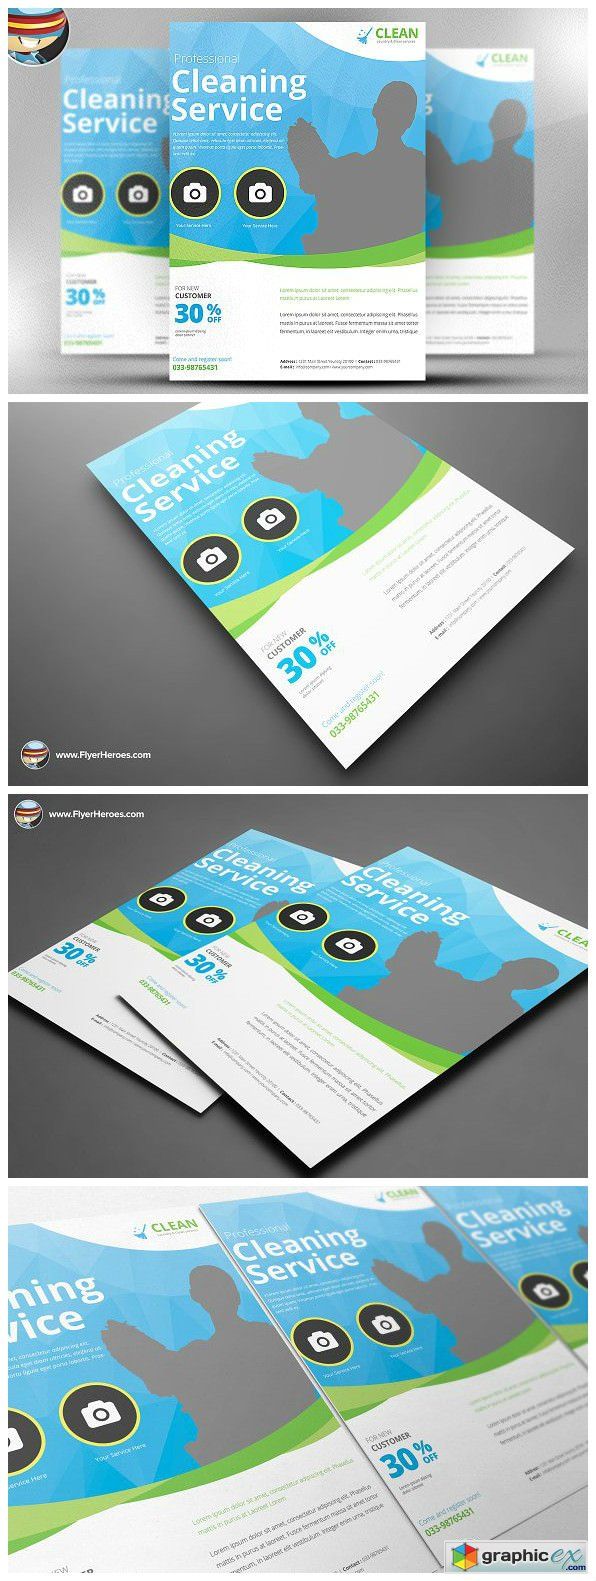 Cleaning Service Flyer Template 2317985